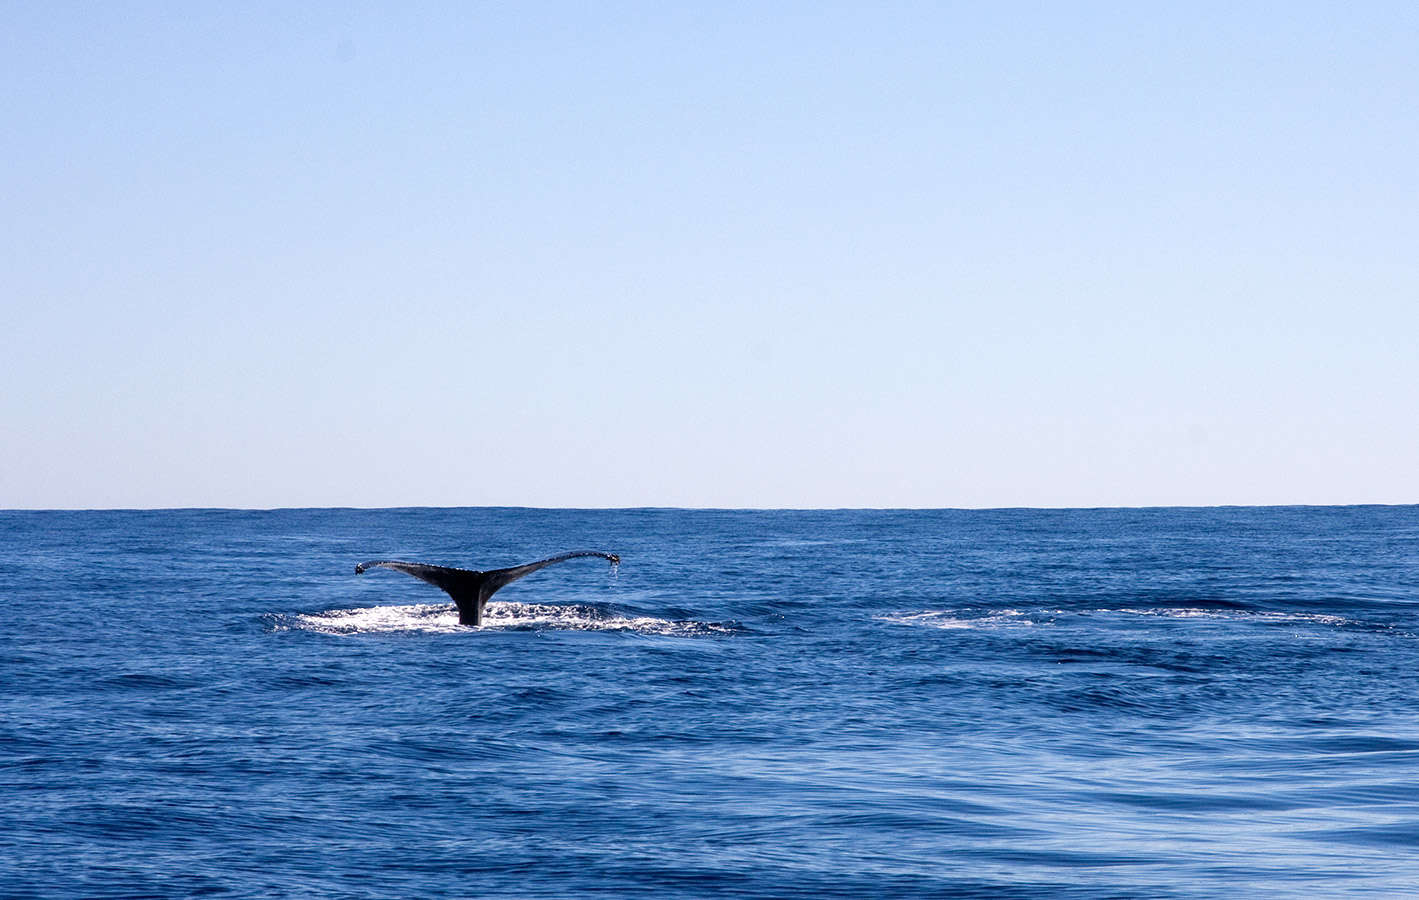 Fluke Splashing while Whale Watching - Yoga Retreat - Mexico